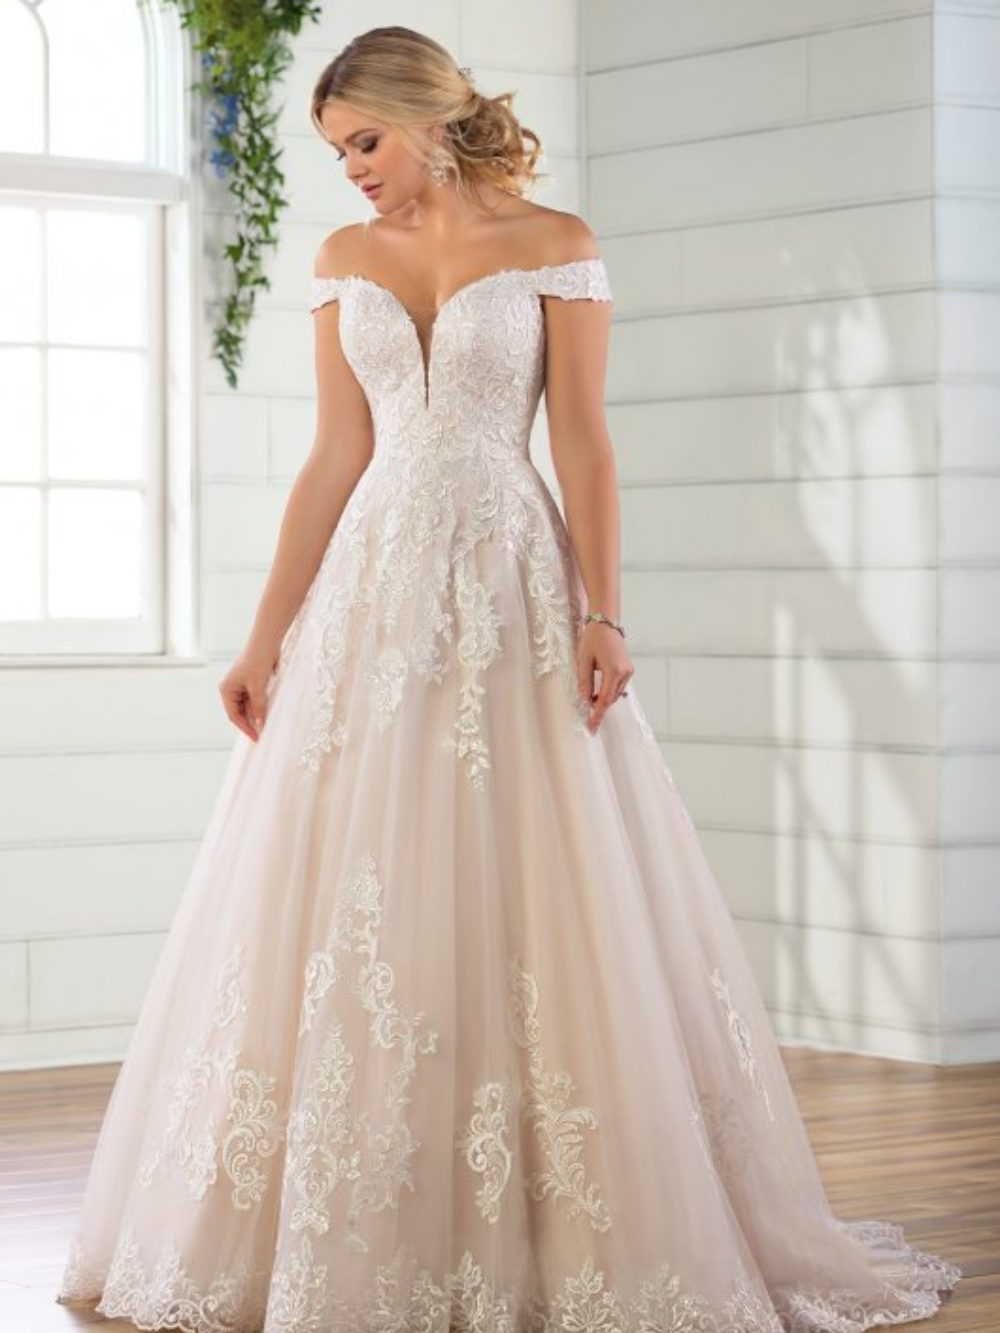 b0260cad1d Essense of Australia Wedding Dresses at Precious Memories